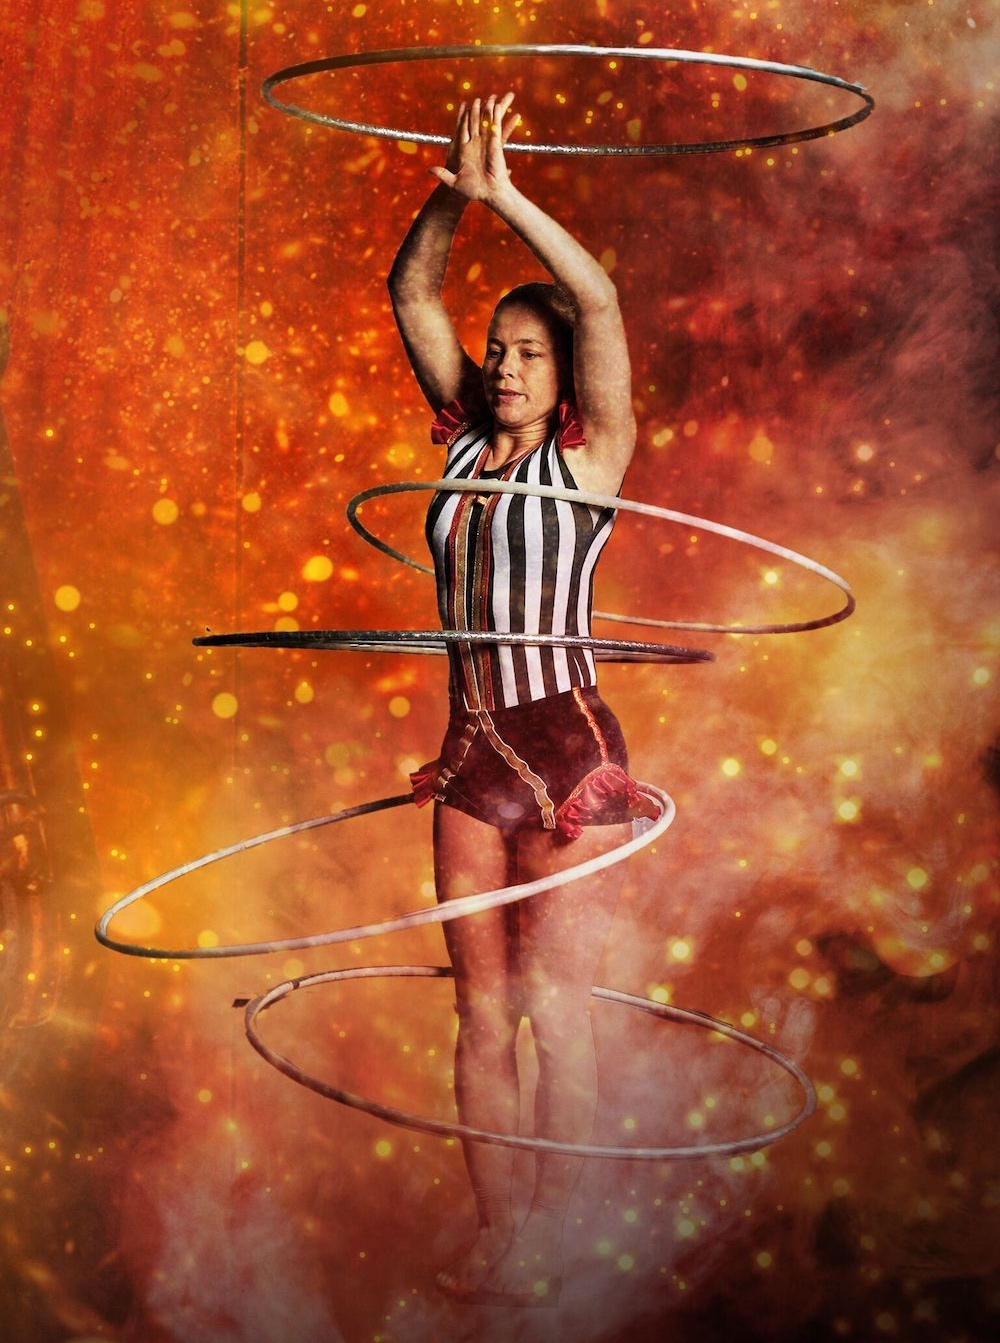 lady spinning hoops